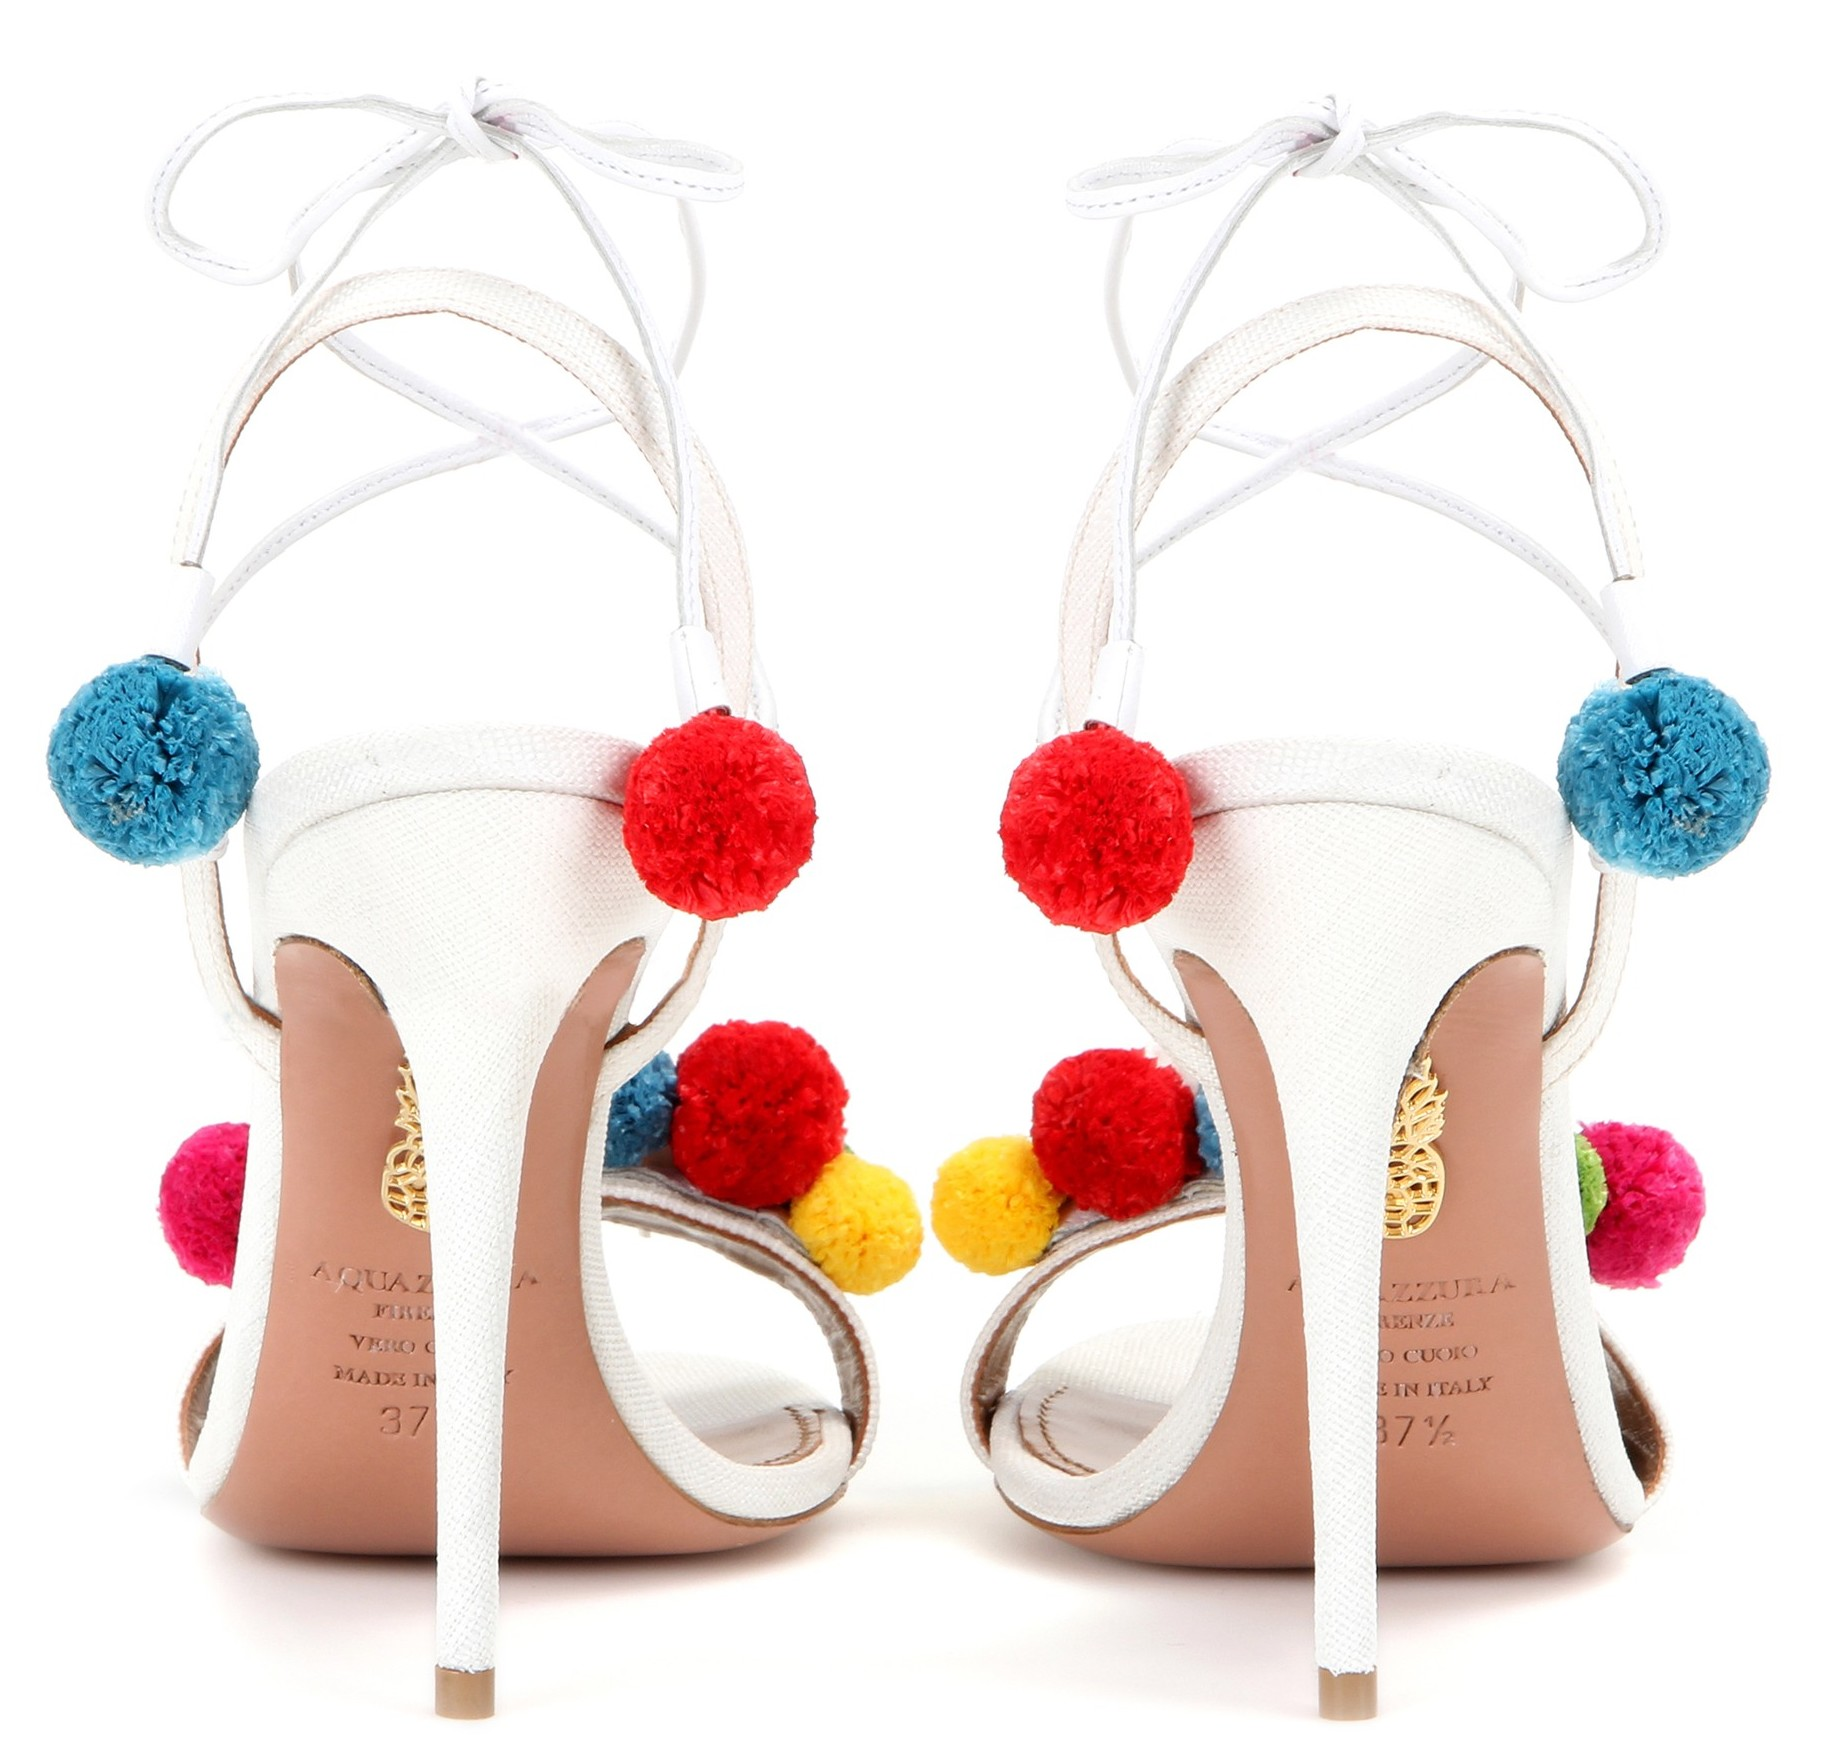 Aquazzura Pon Pon 105 raffia and leather sandals